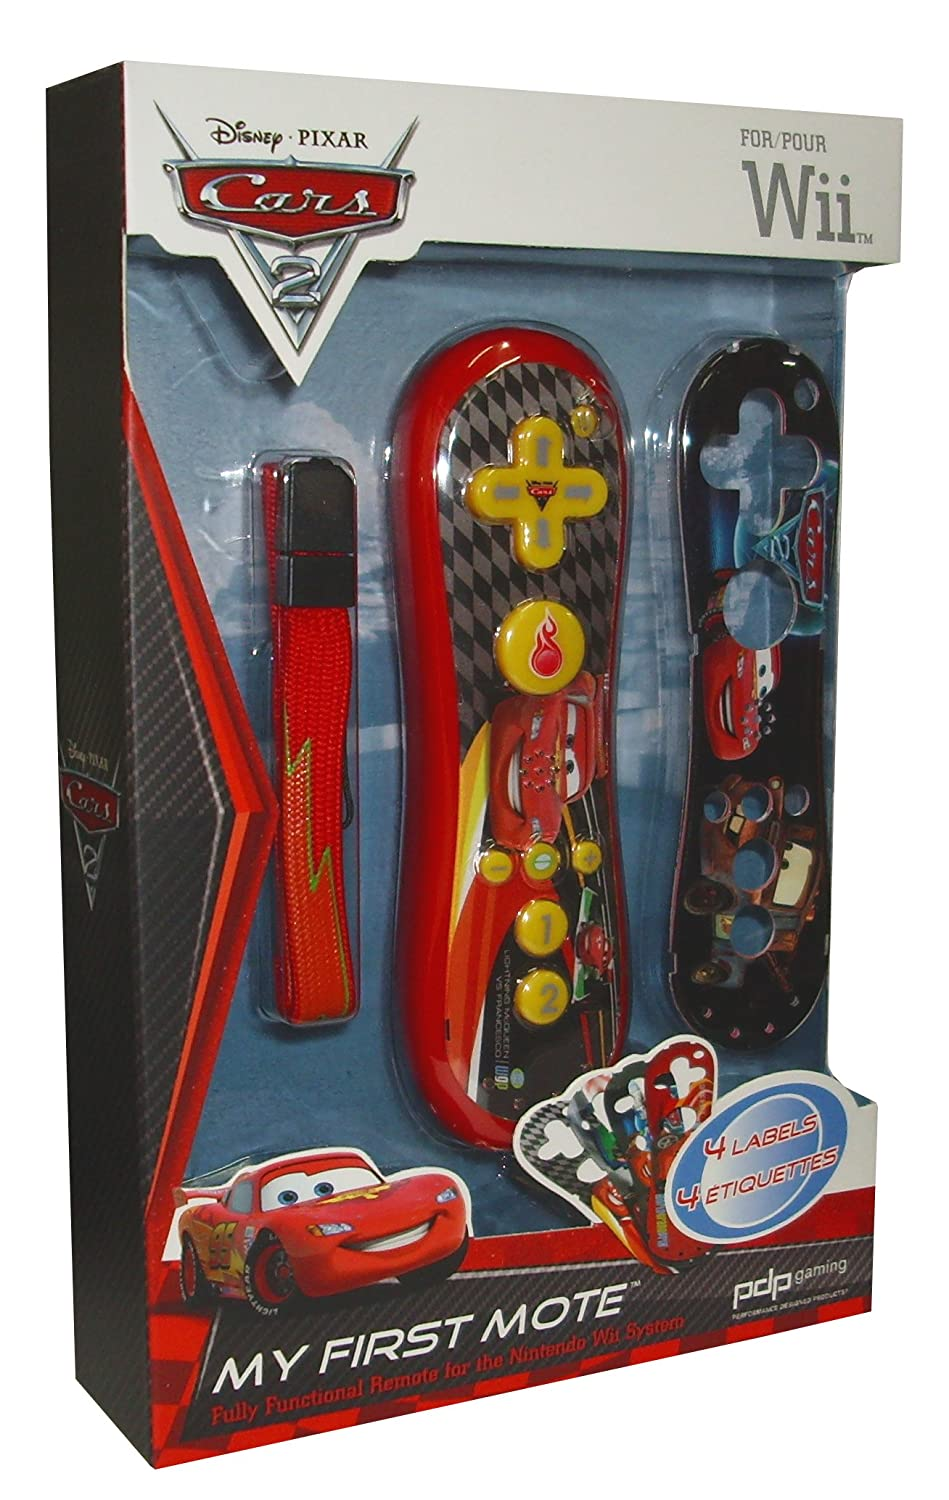 Wii My First Mote Cars Pixar Surprise price Purchase Remote Disney